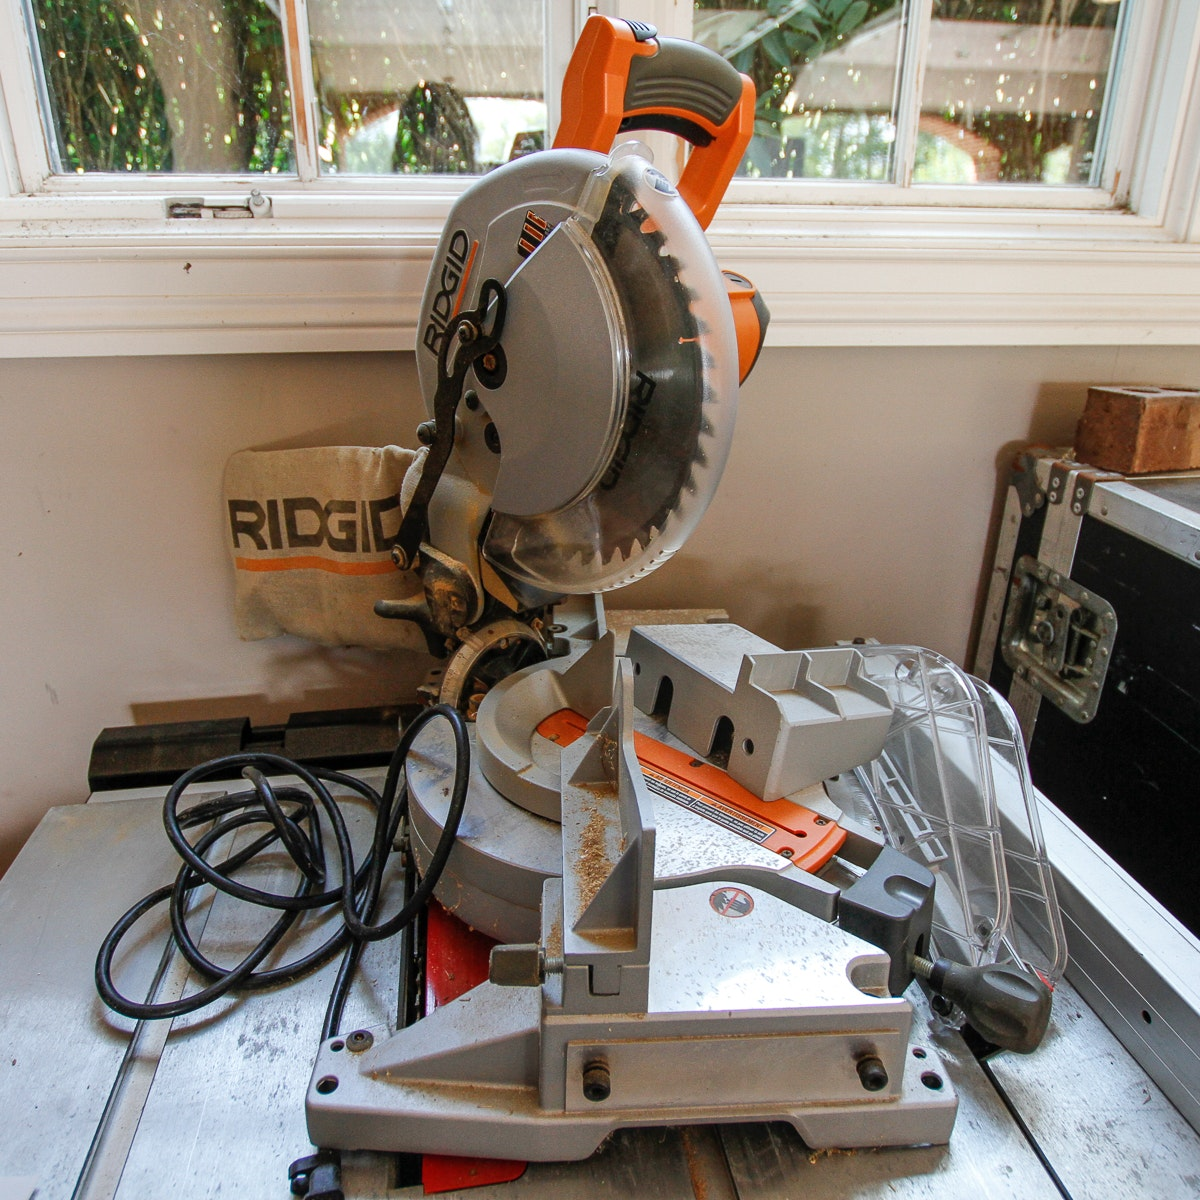 Ridgid Compound Miter Saw